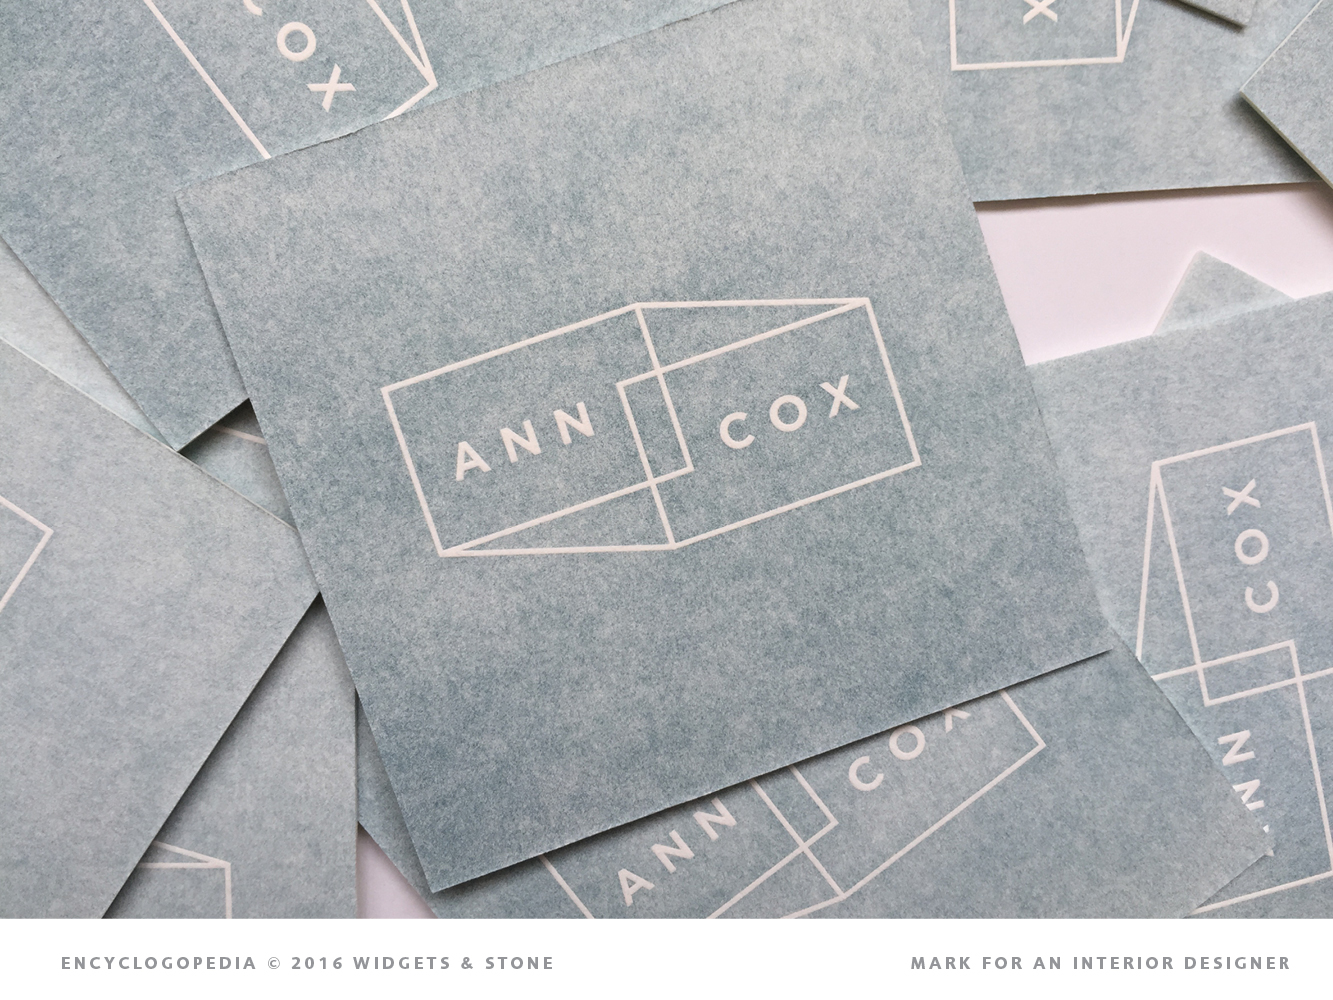 Copy of Ann Cox interior design logo application